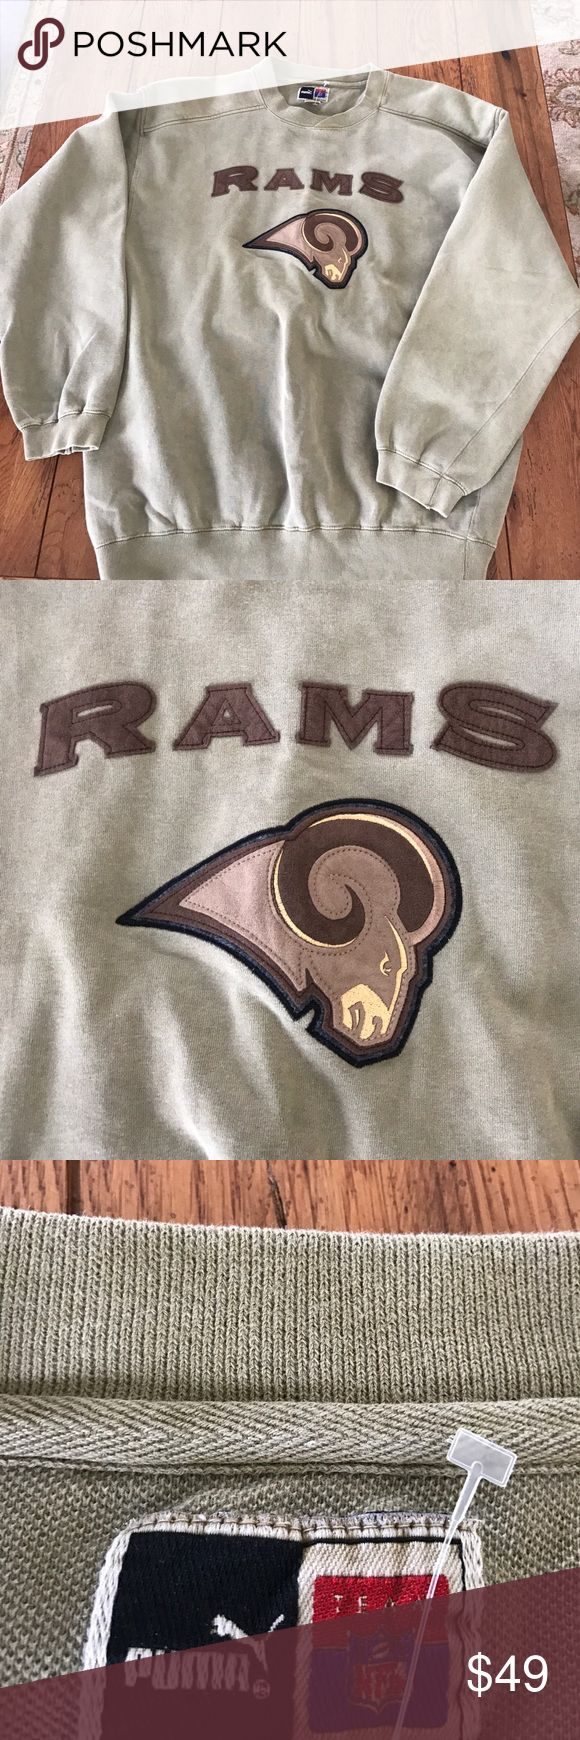 Vintage Puma NFL Los Angeles Rams Sweatshirt M Awesome sweatshirt, size medium , like new with a vintage fade to it (came this way) non smoking house Puma Shirts Sweatshirts & Hoodies